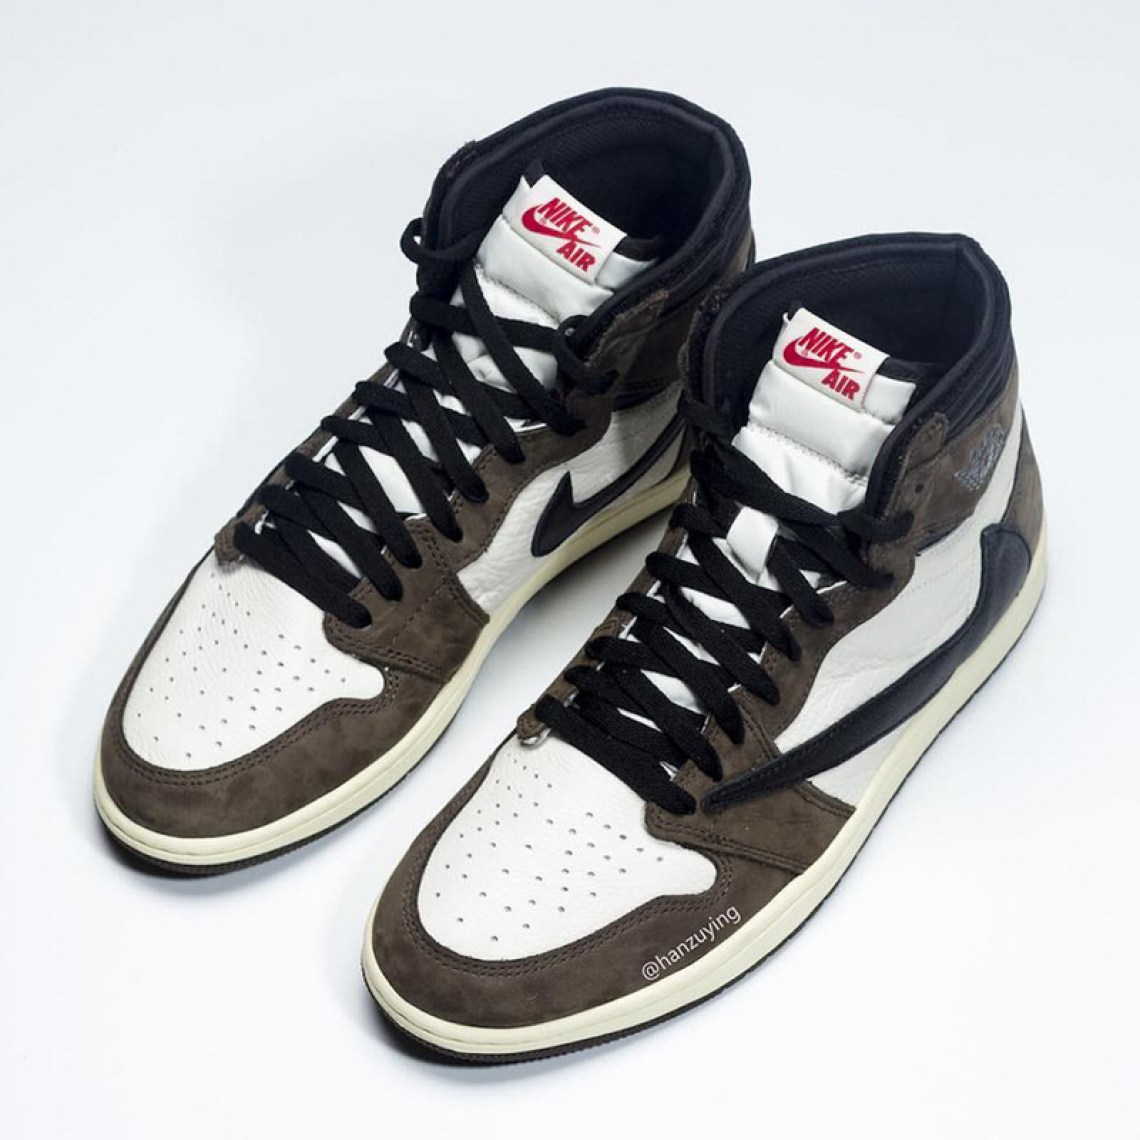 new concept 249ed 11929 ... Travis Scott x Air Jordan 1